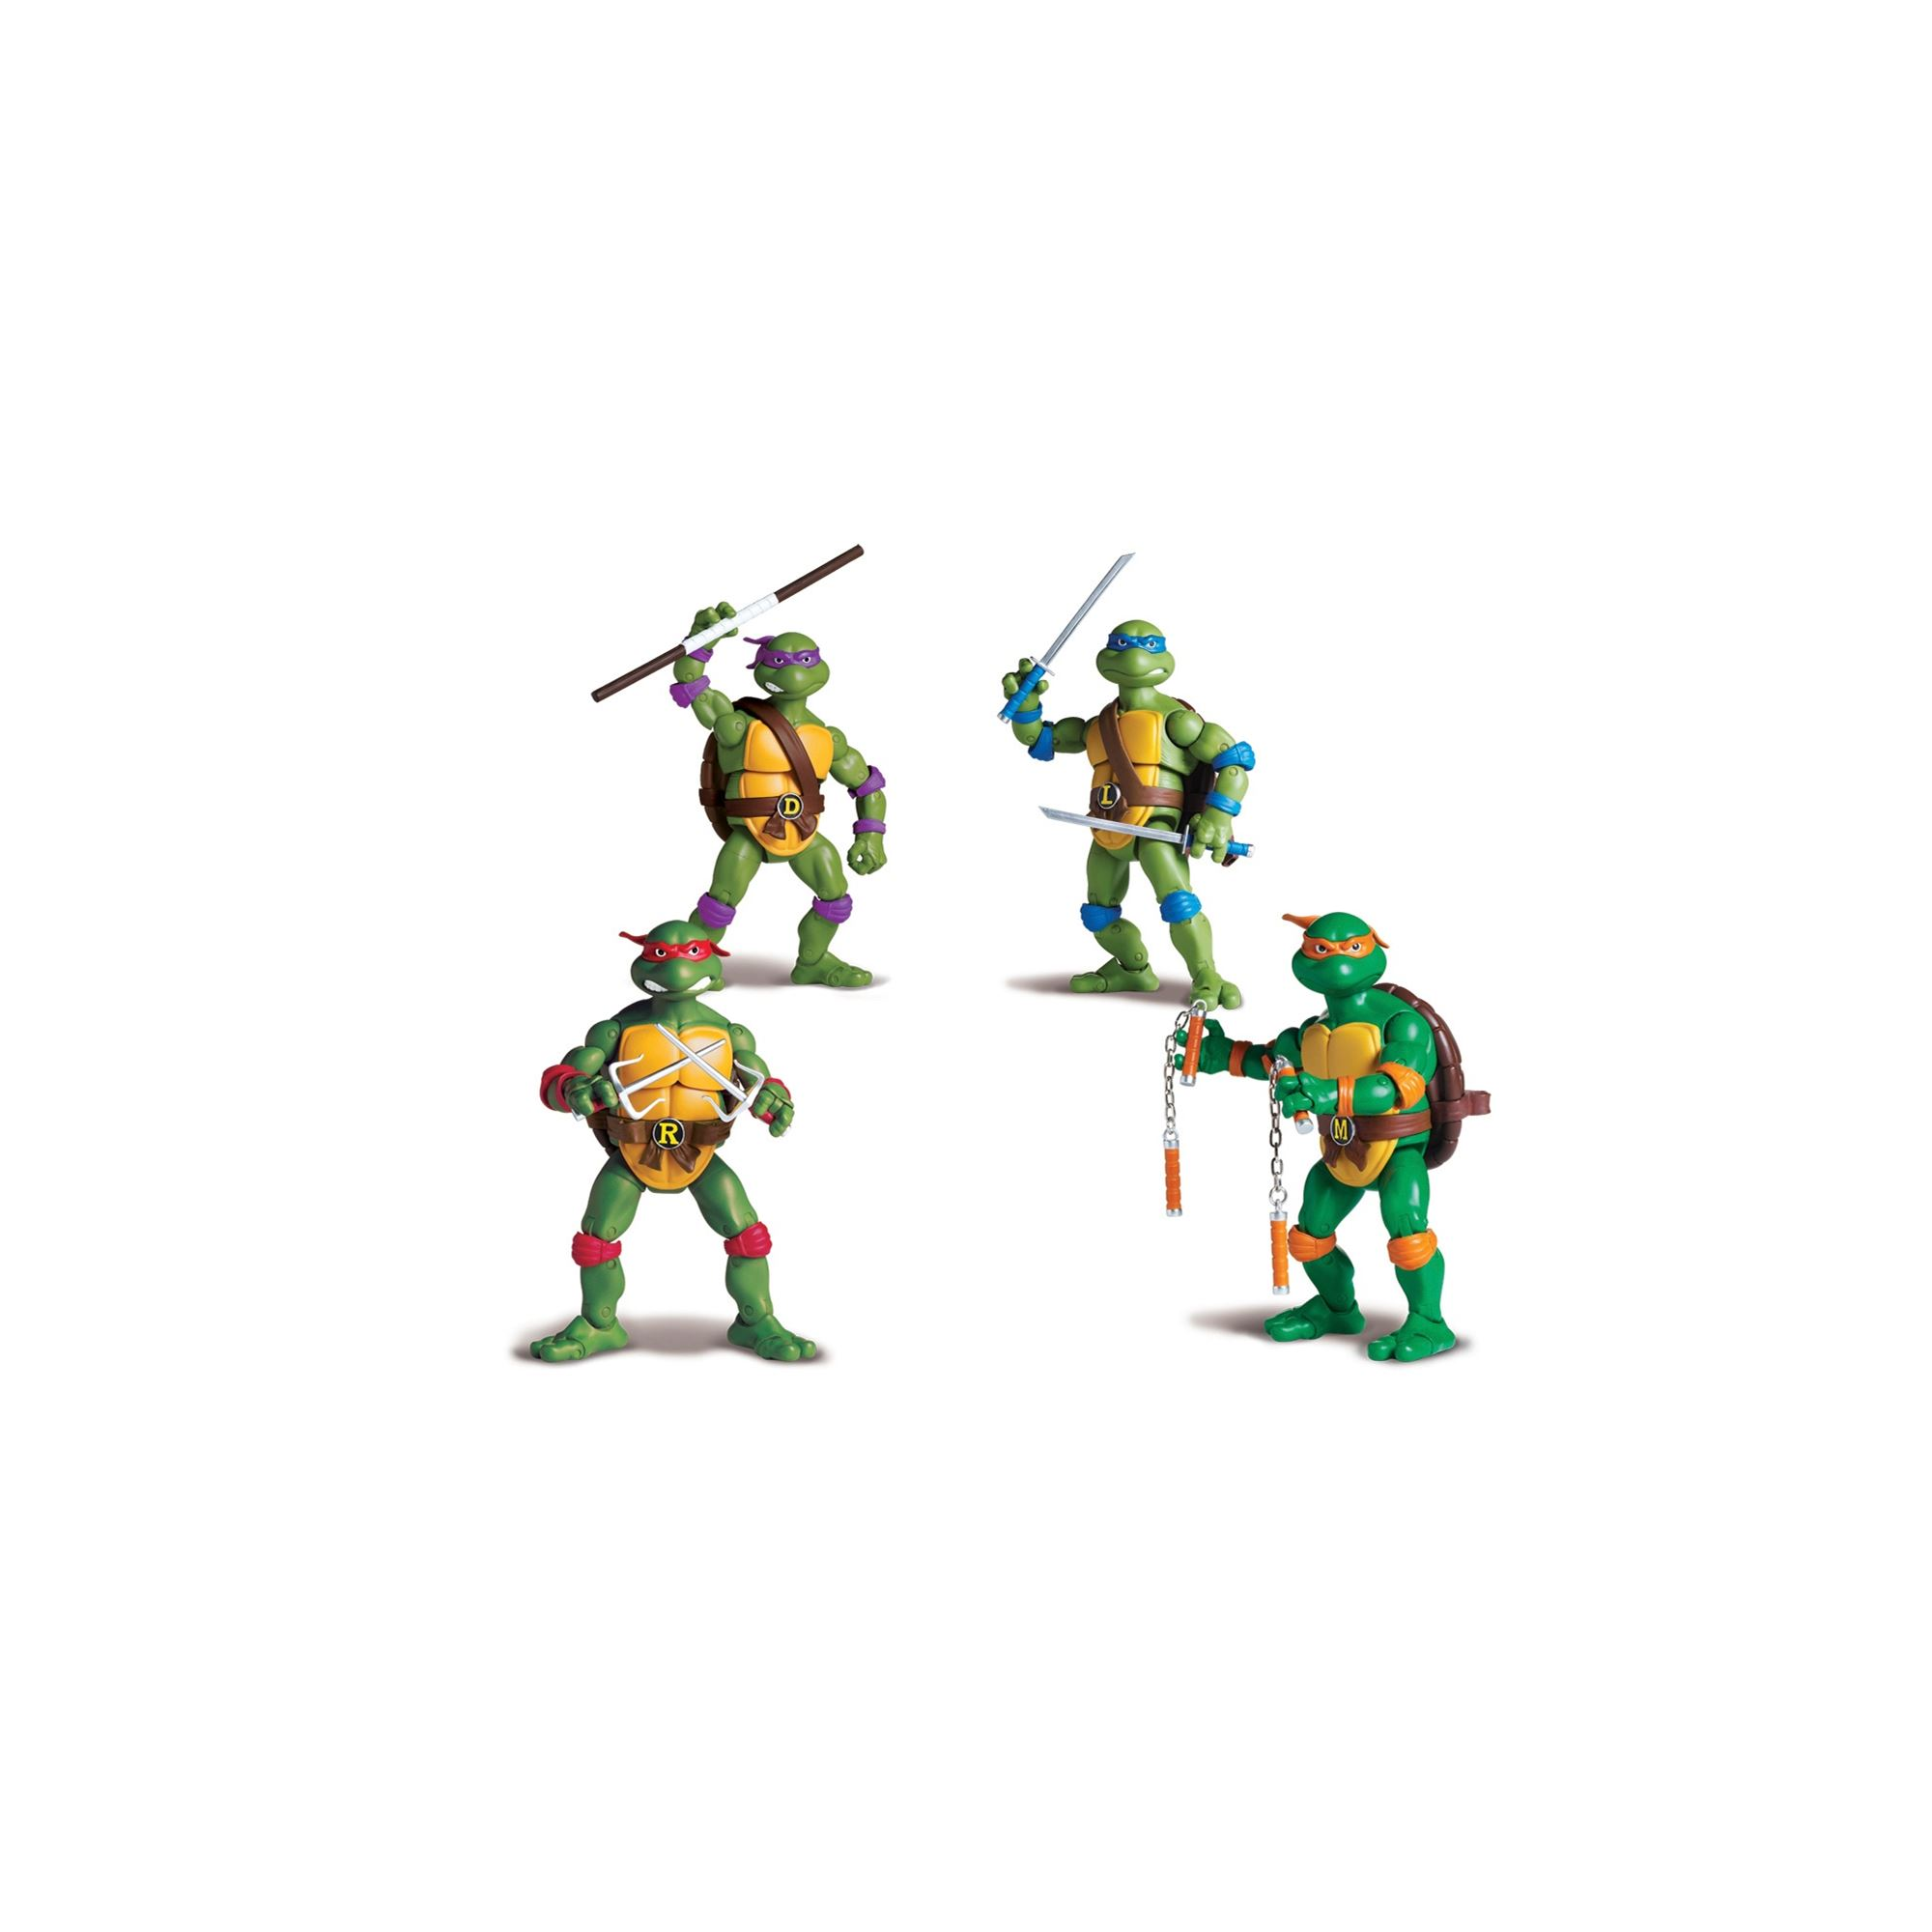 Turtles Classic 15cm Figure Collection